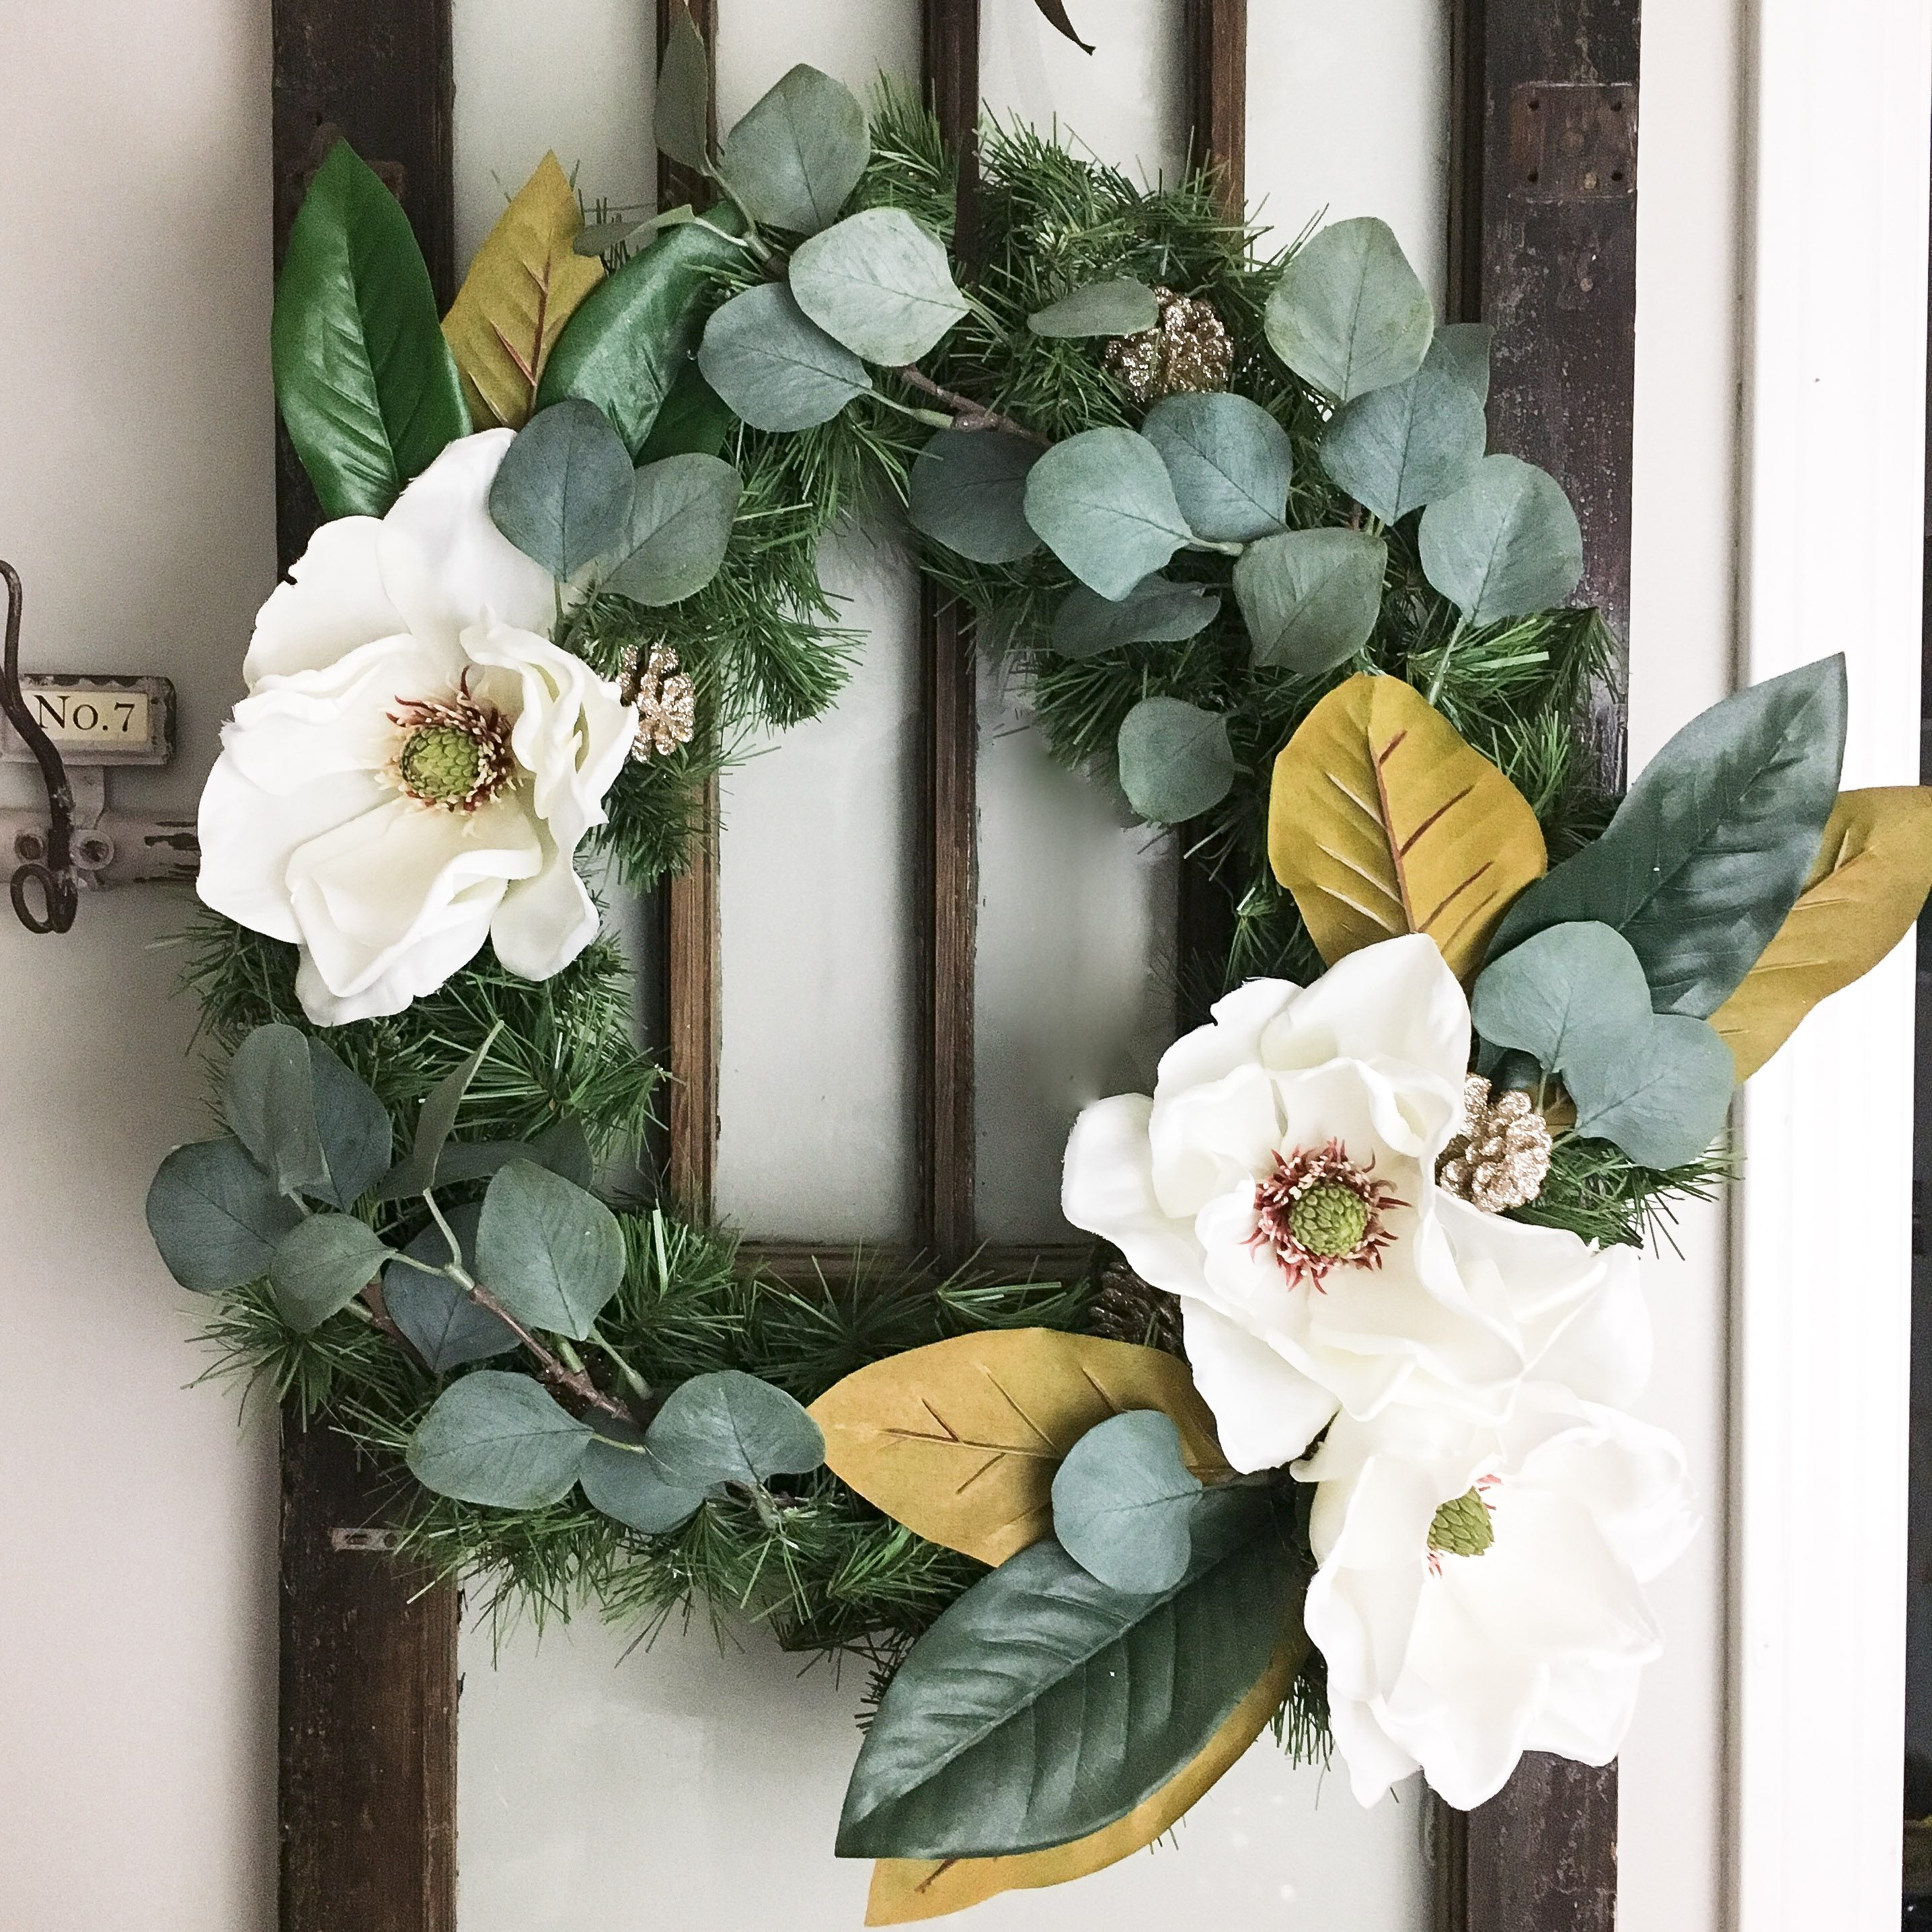 DIY Christmas Wreath…Yes, Another One